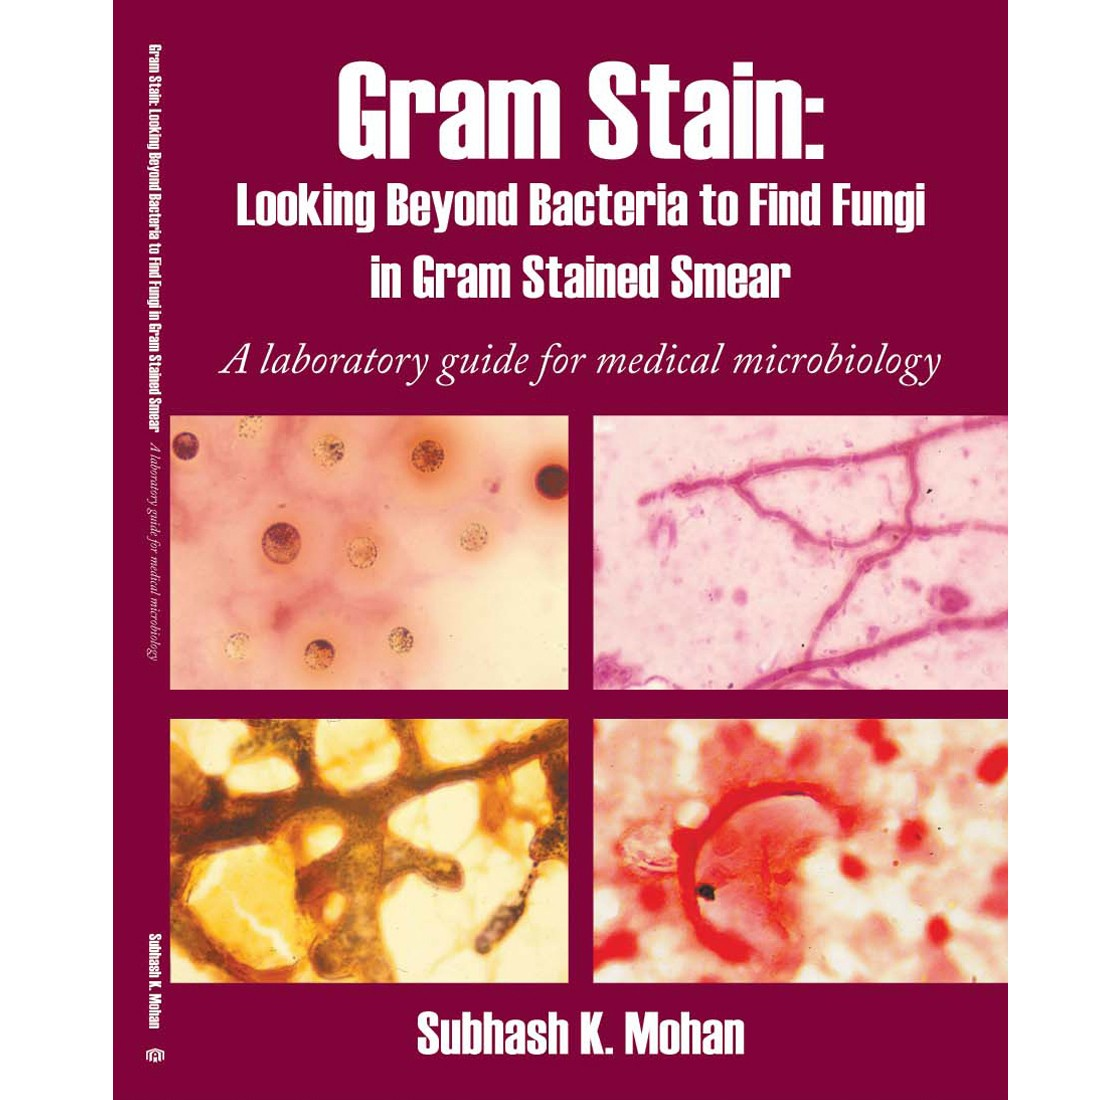 Gram Stain: Looking Beyond Bacteria to Find Fungi in Gram Stained Smear: A laboratory guide for medical microbiology